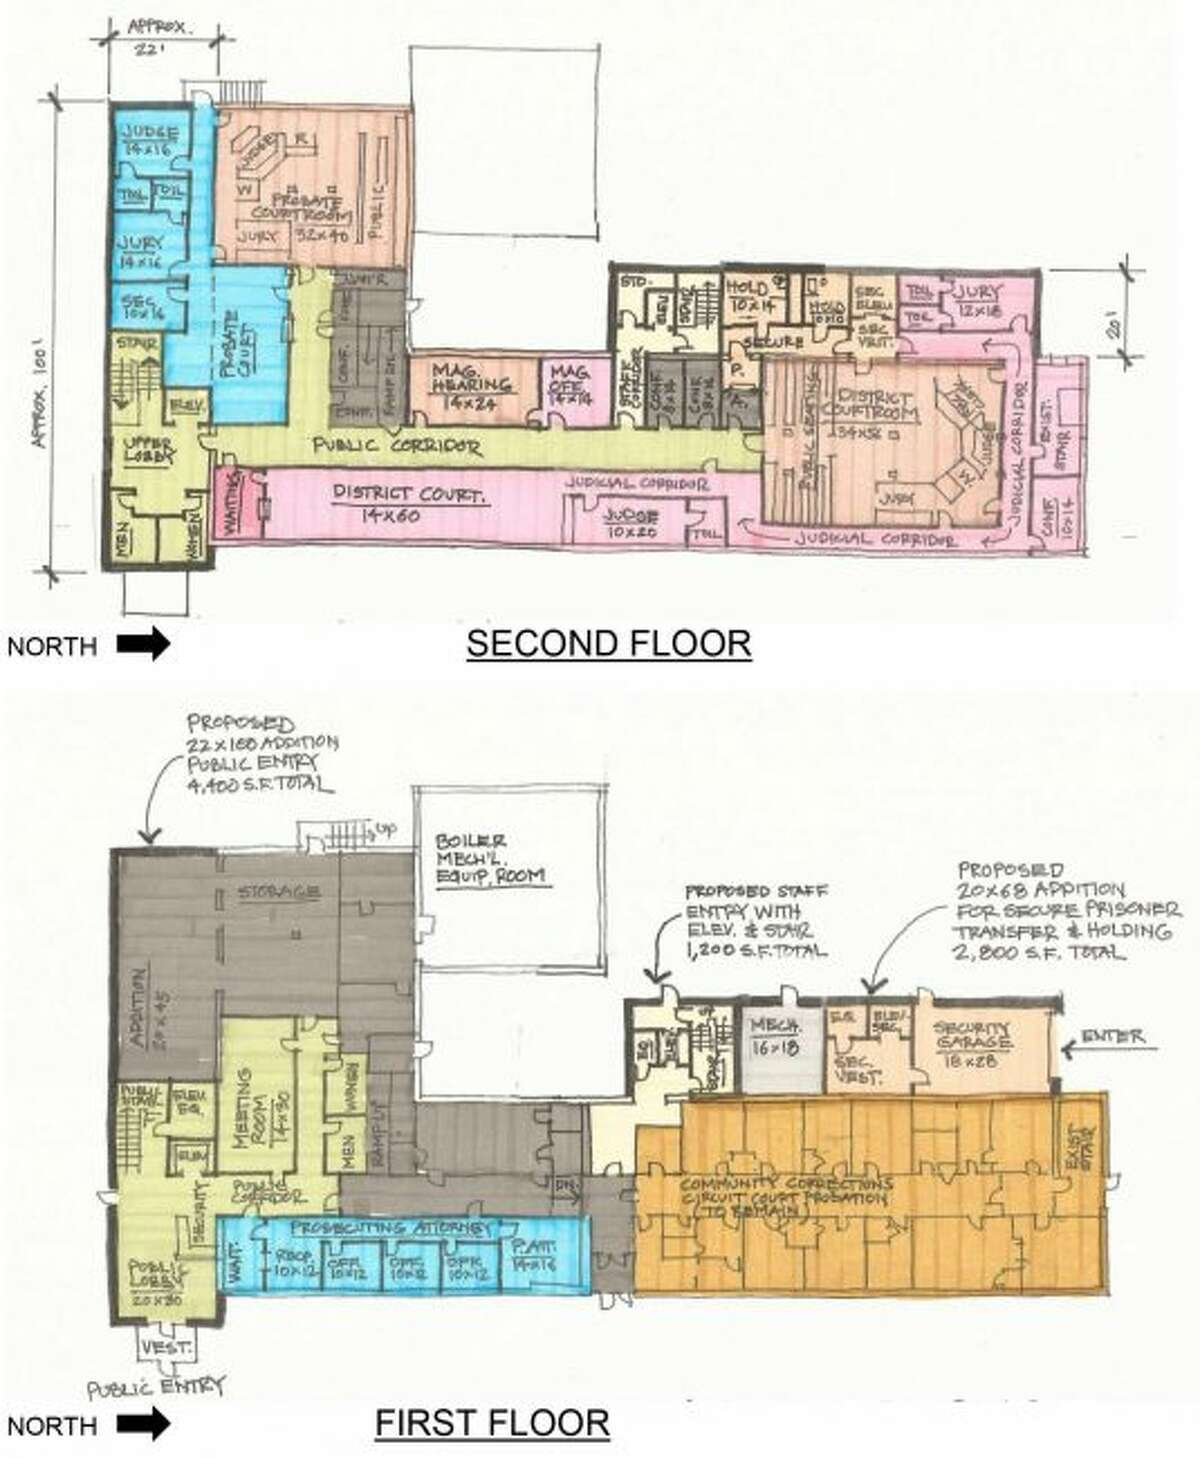 The feasibility study for the Osceola County Courthouse and Annex Building includes the new layout of one plan for renovations to the Annex Building, which includes a new public entrance, security screening and use of the space of the former library. The project is estimated at $2.9 million by Landmark Design Group. (Courtesy Photo)